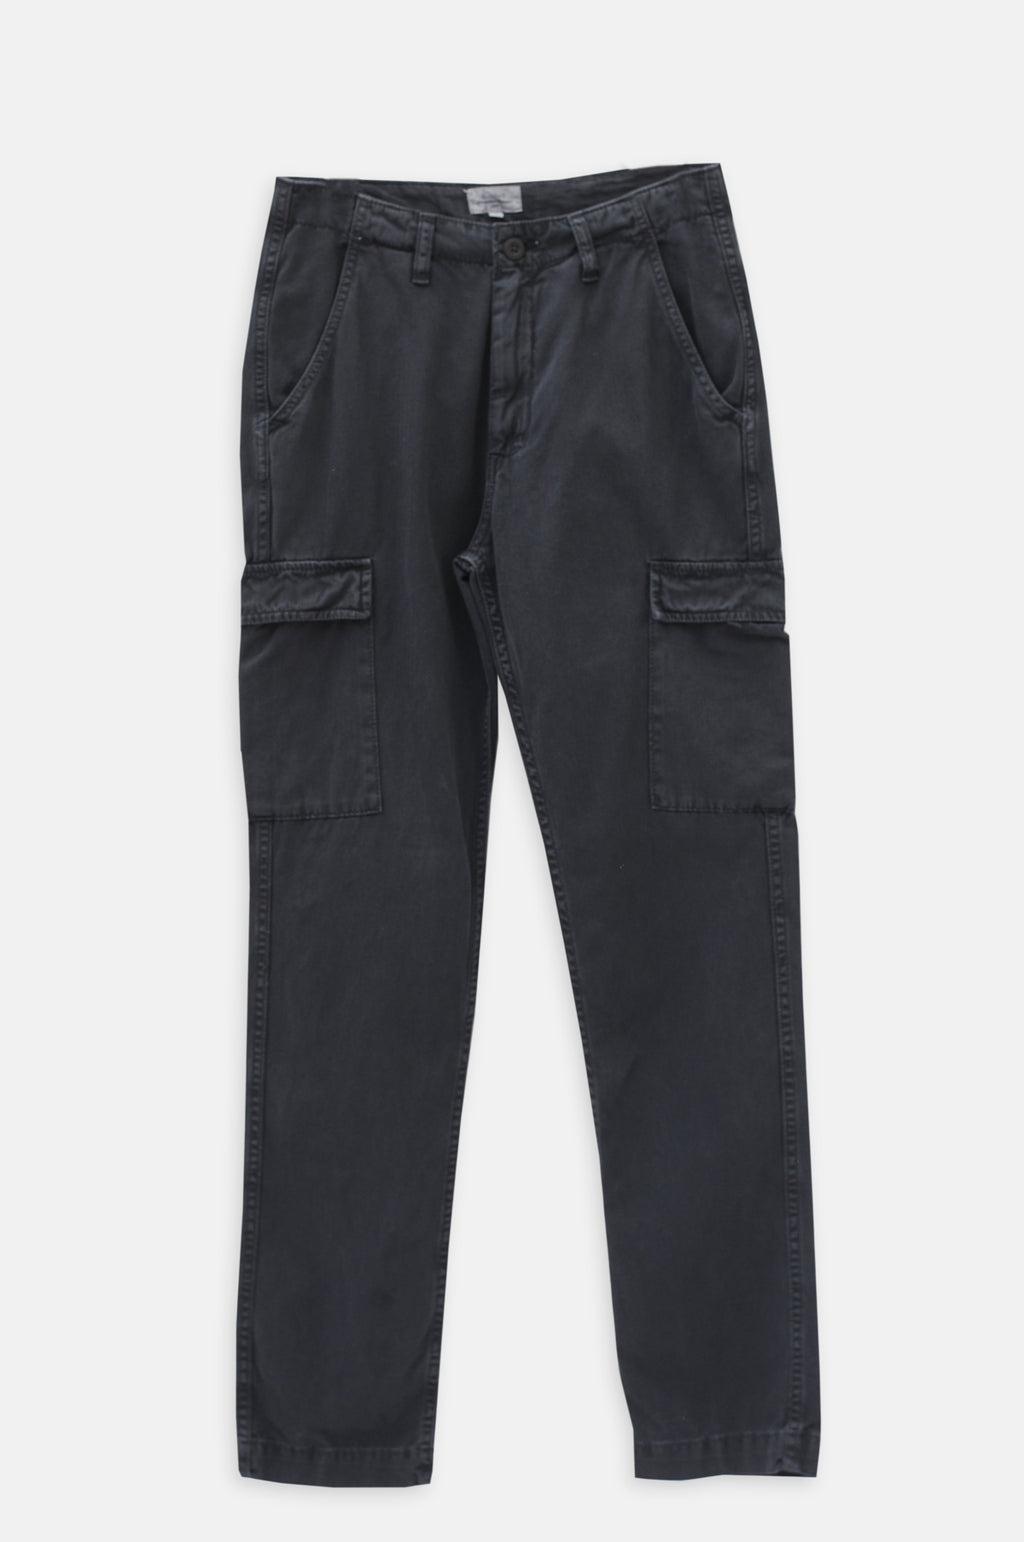 Pargot Pant in Charcoal